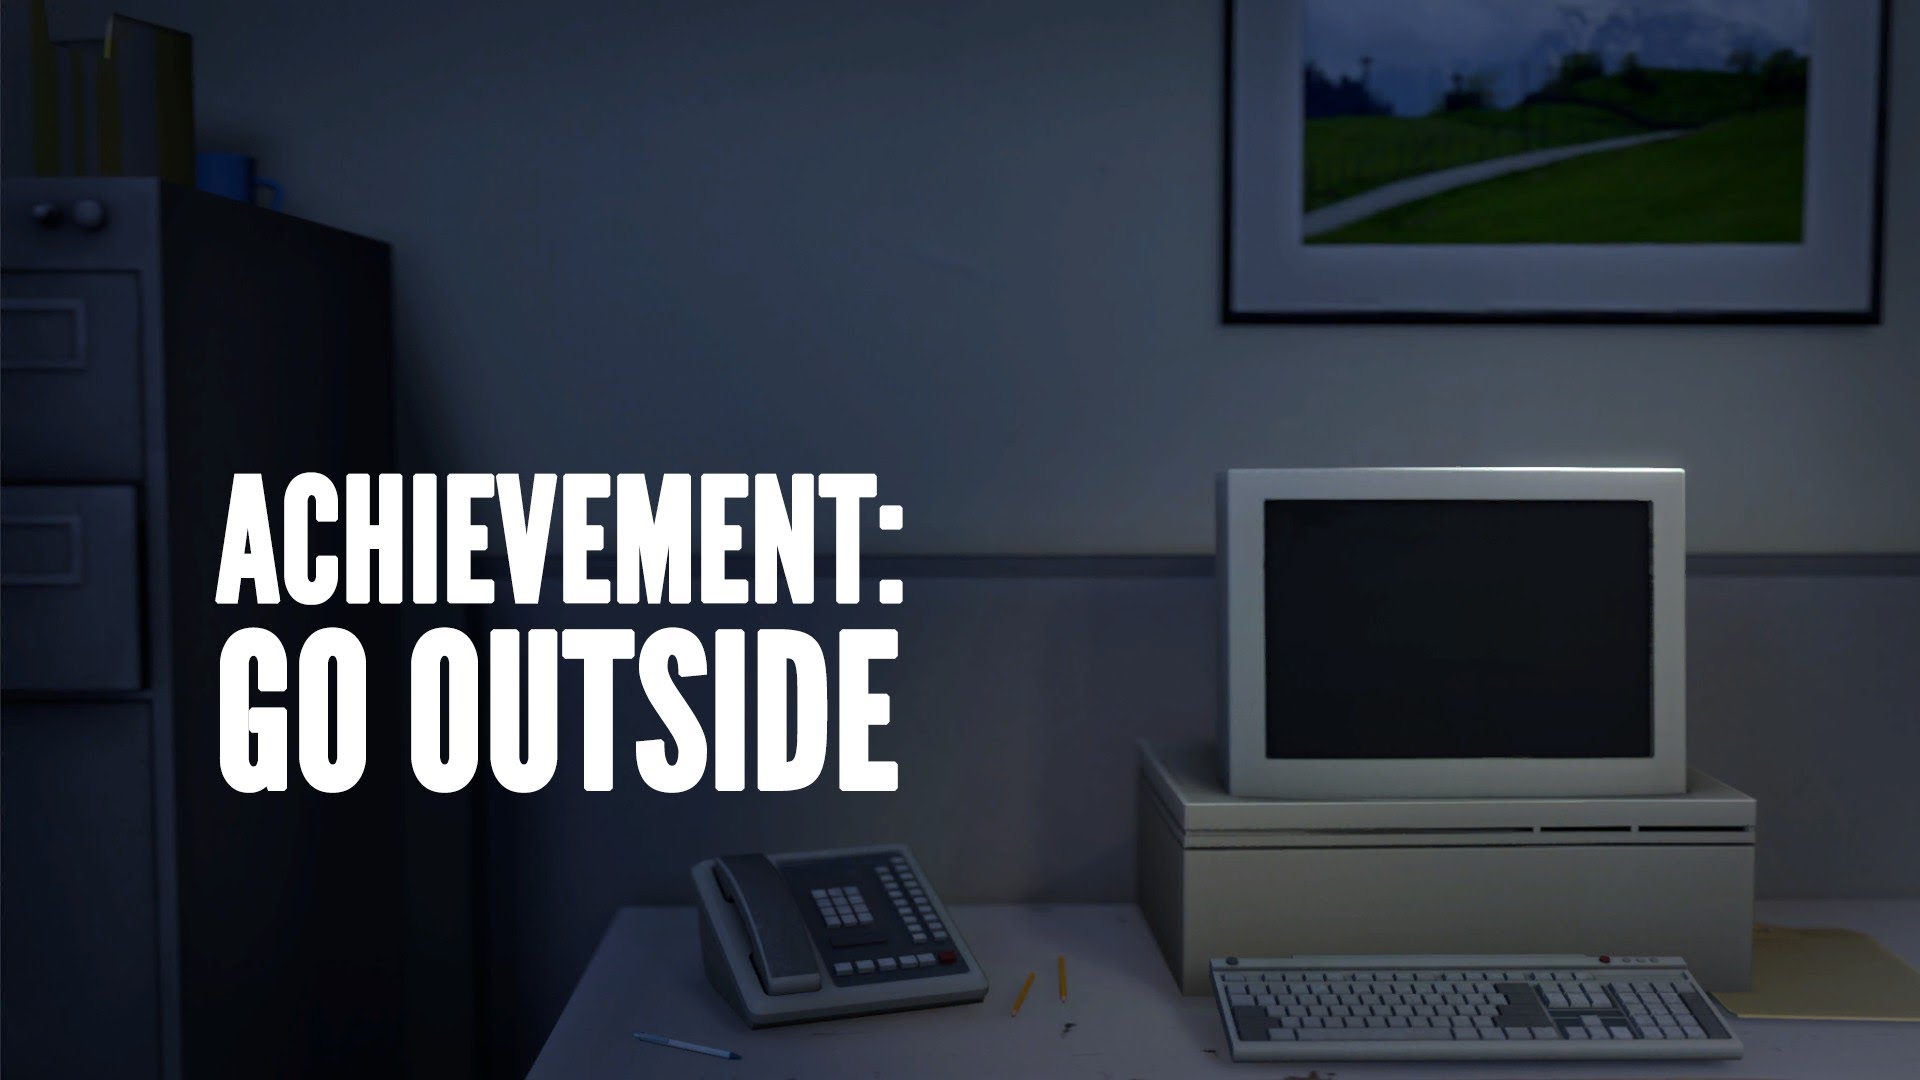 Have you played The Stanley Parable? ...